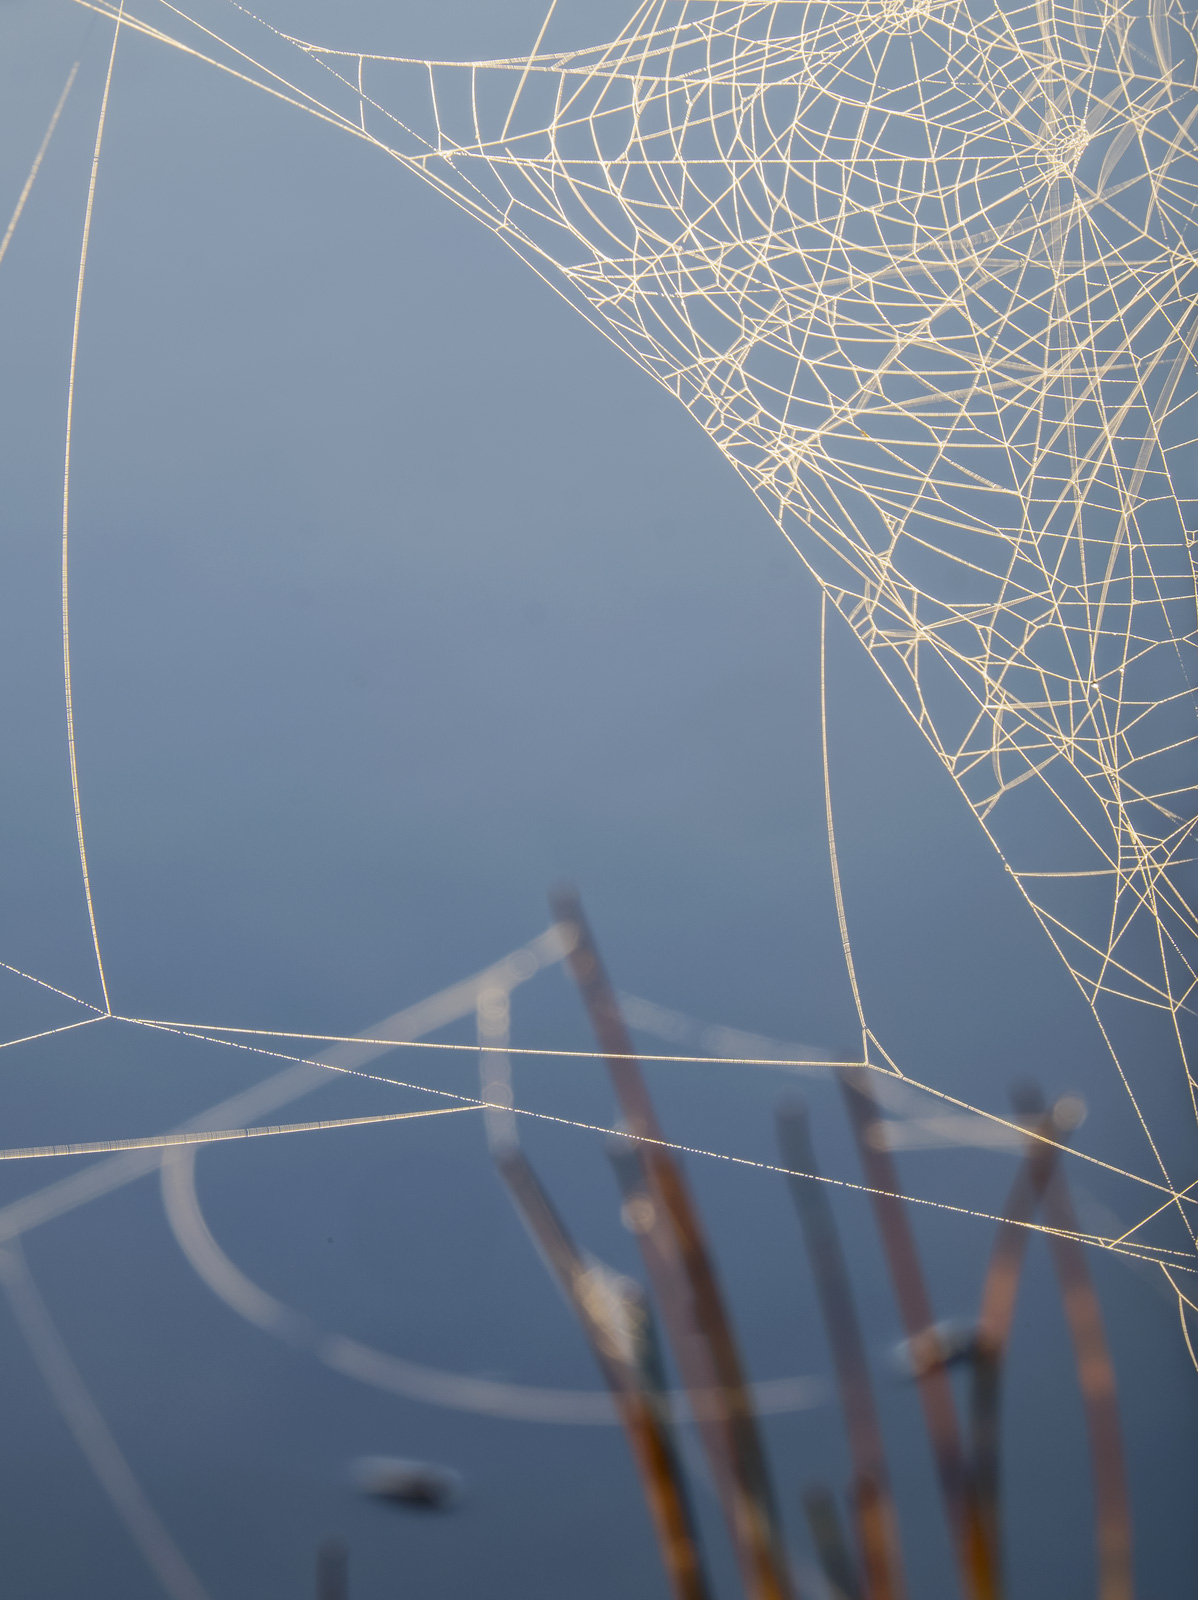 Rusky Lacework, Loch Rusky, Trossachs, Scotland, morning, autumn, magical, embroidered, strung, dew, frozen, mist, cobwe, photo